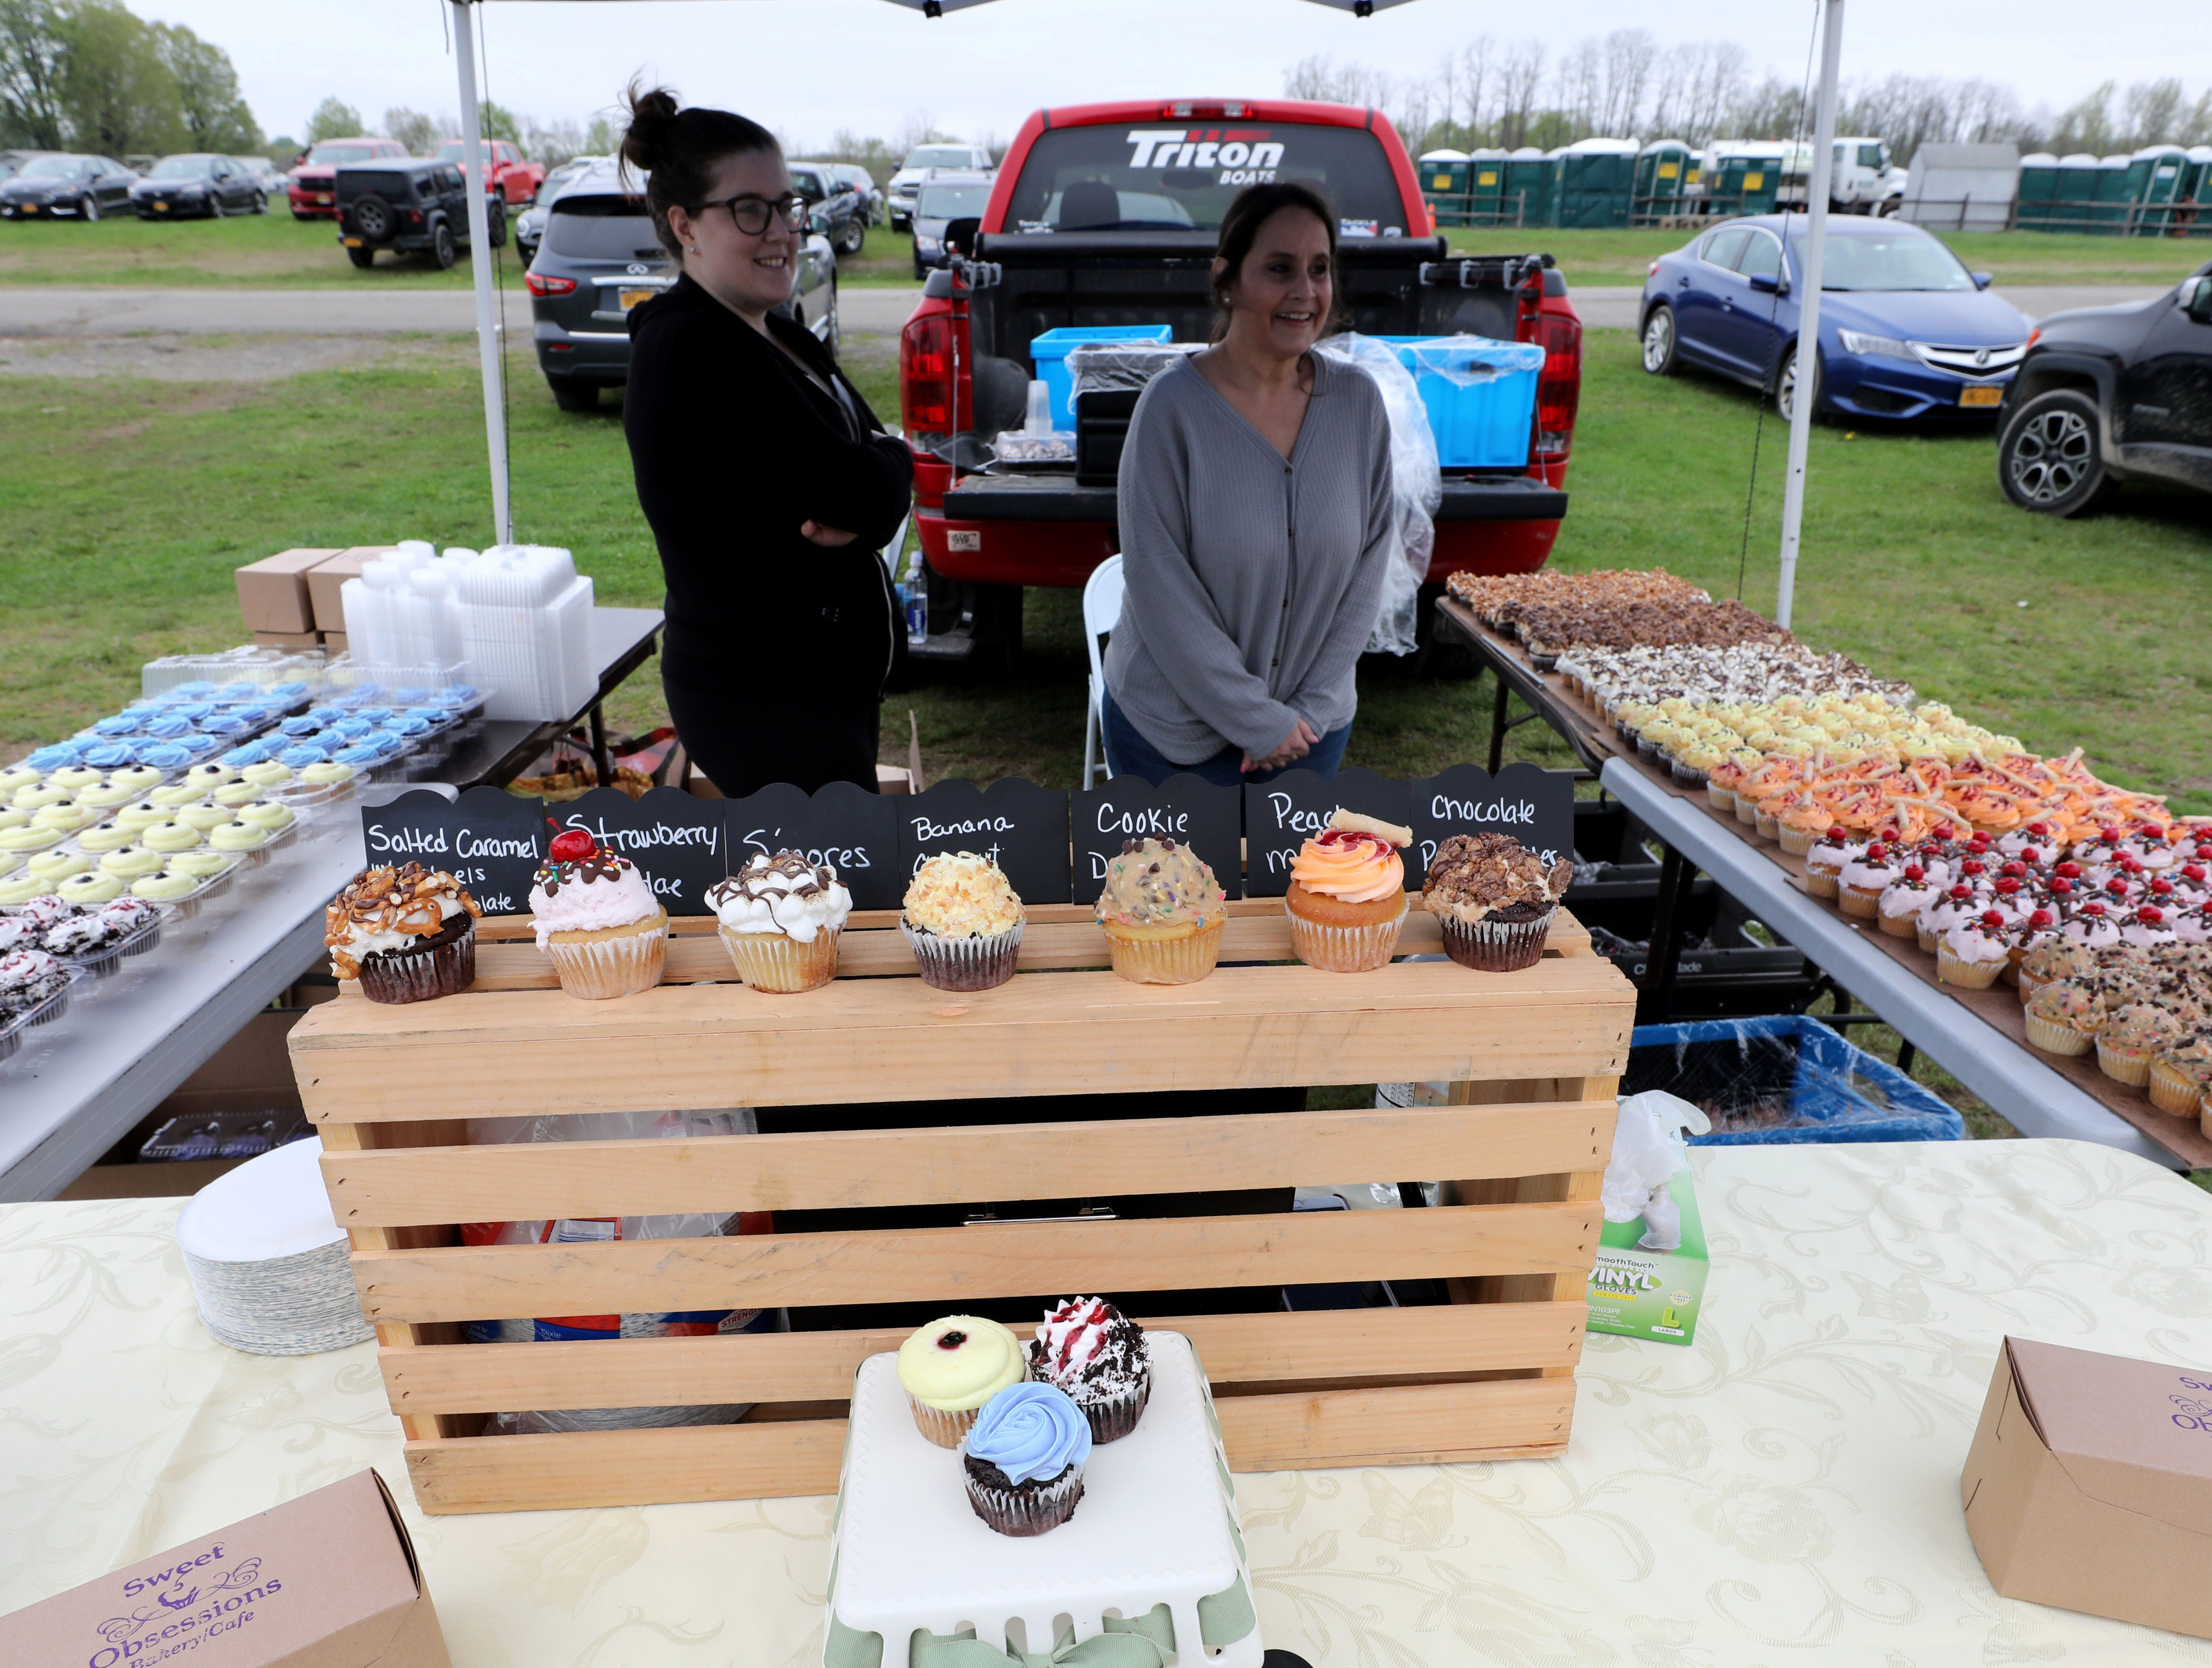 The Sweet Obsessions booth is pictured during the K104.7 Cupcake Festival at the Stormville Airport, May 4, 2019.